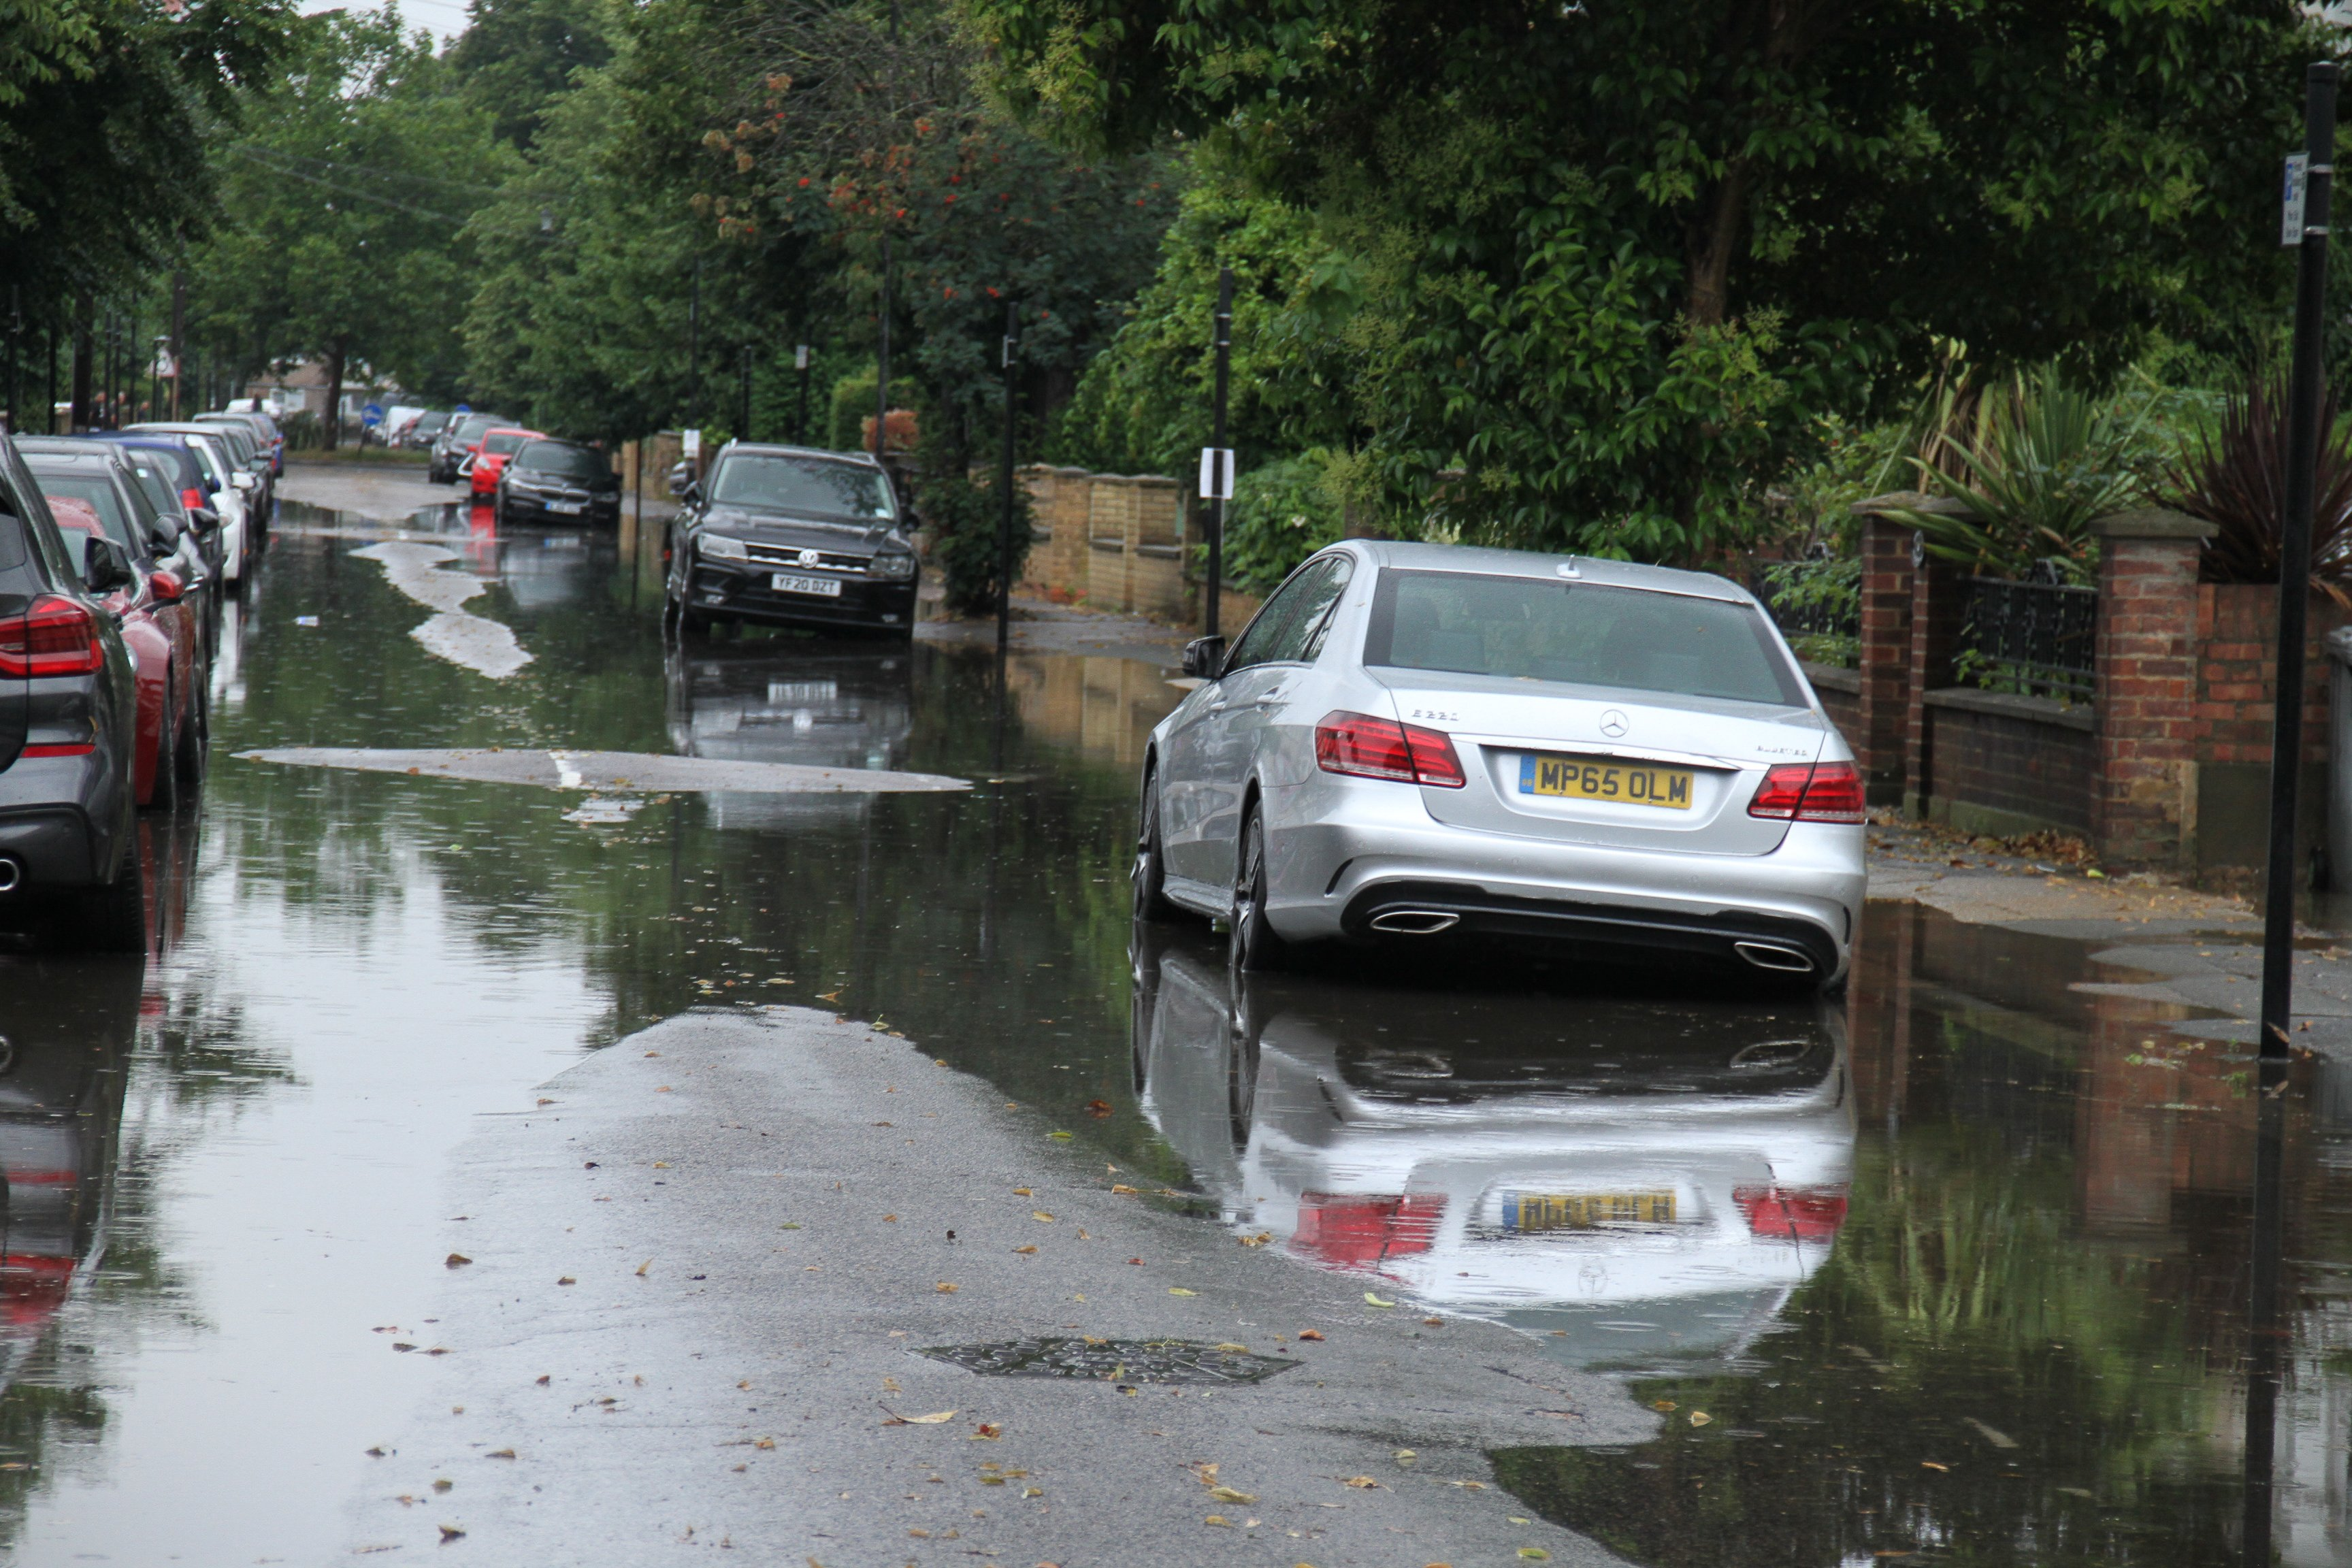 Vehicles seen parked on a flooded street in a suburb in East